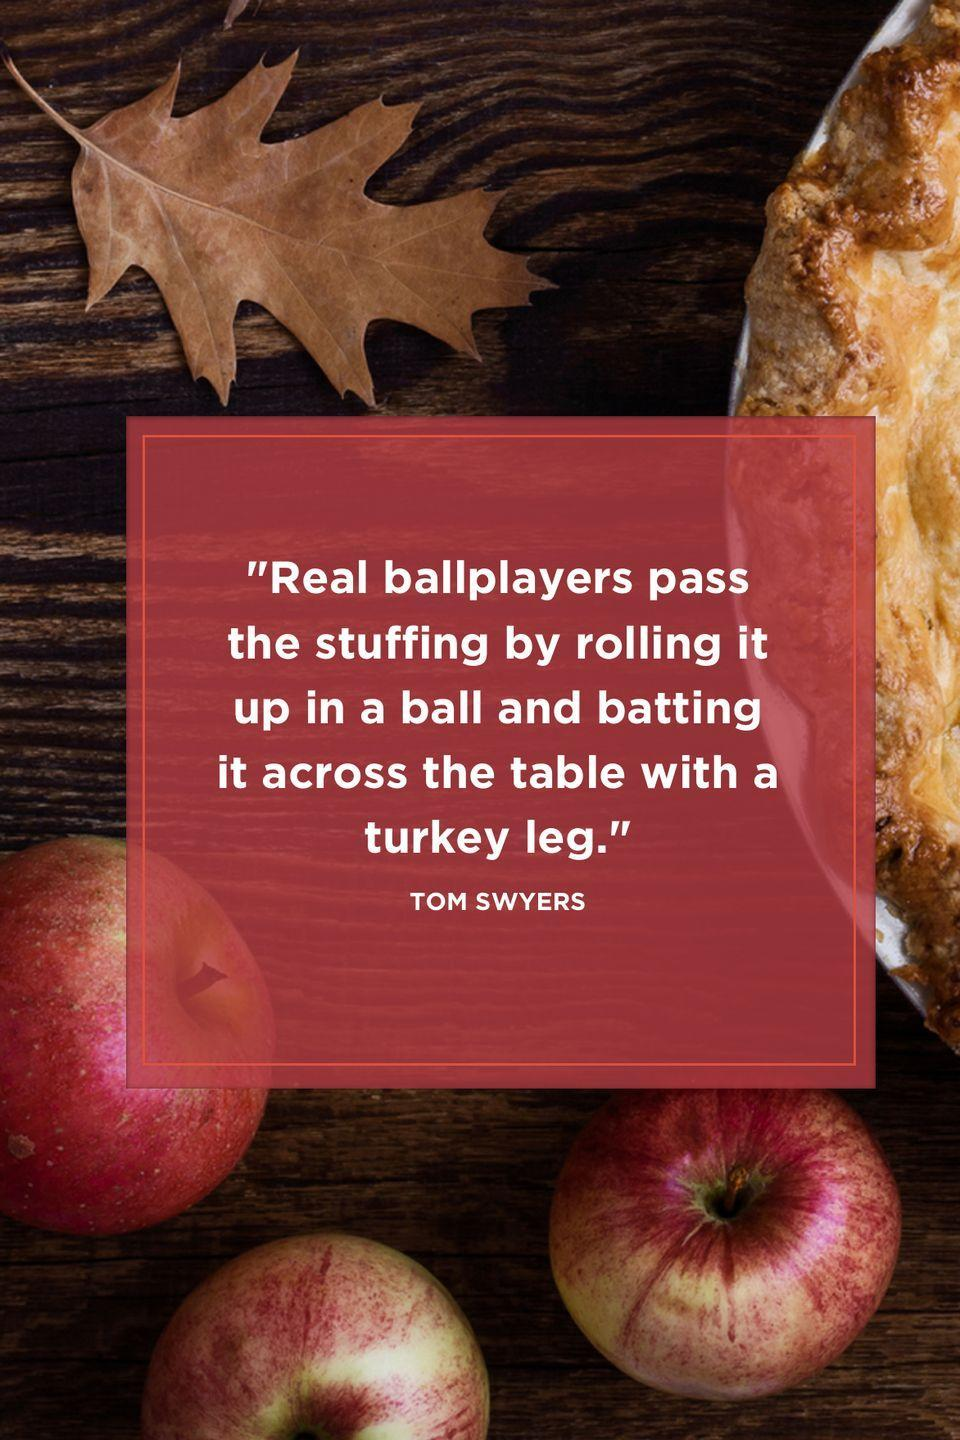 "<p>""Real ballplayers pass the stuffing by rolling it up in a ball and batting it across the table with a turkey leg.""</p>"